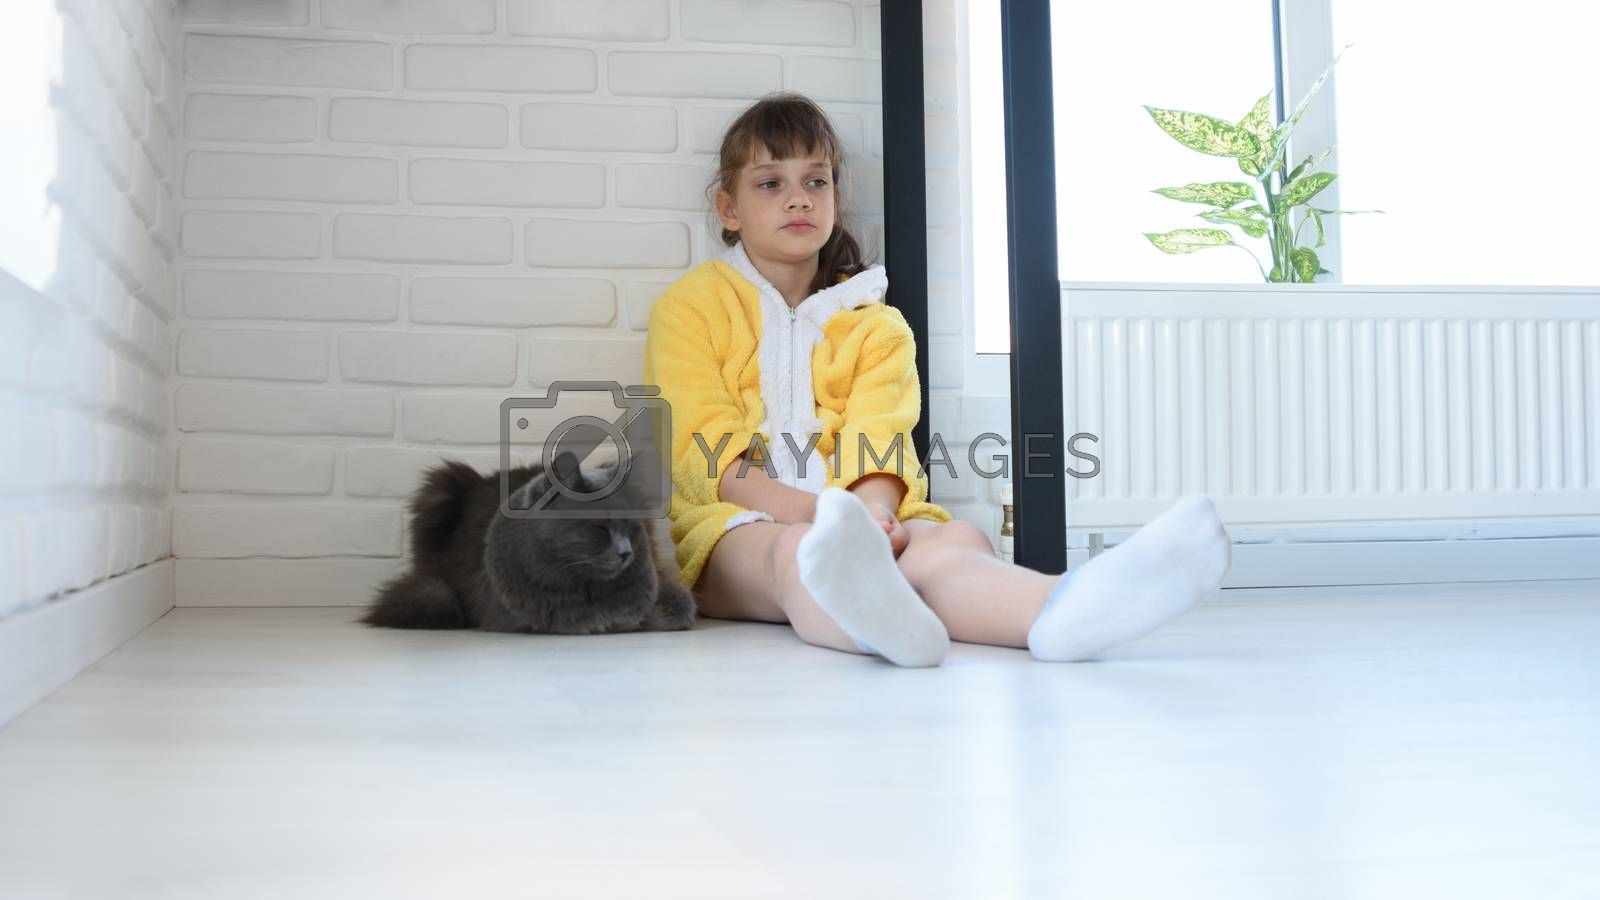 An upset girl in a yellow bathrobe sits in the corner of the room, a dark gray domestic cat sits nearby by Madhourse